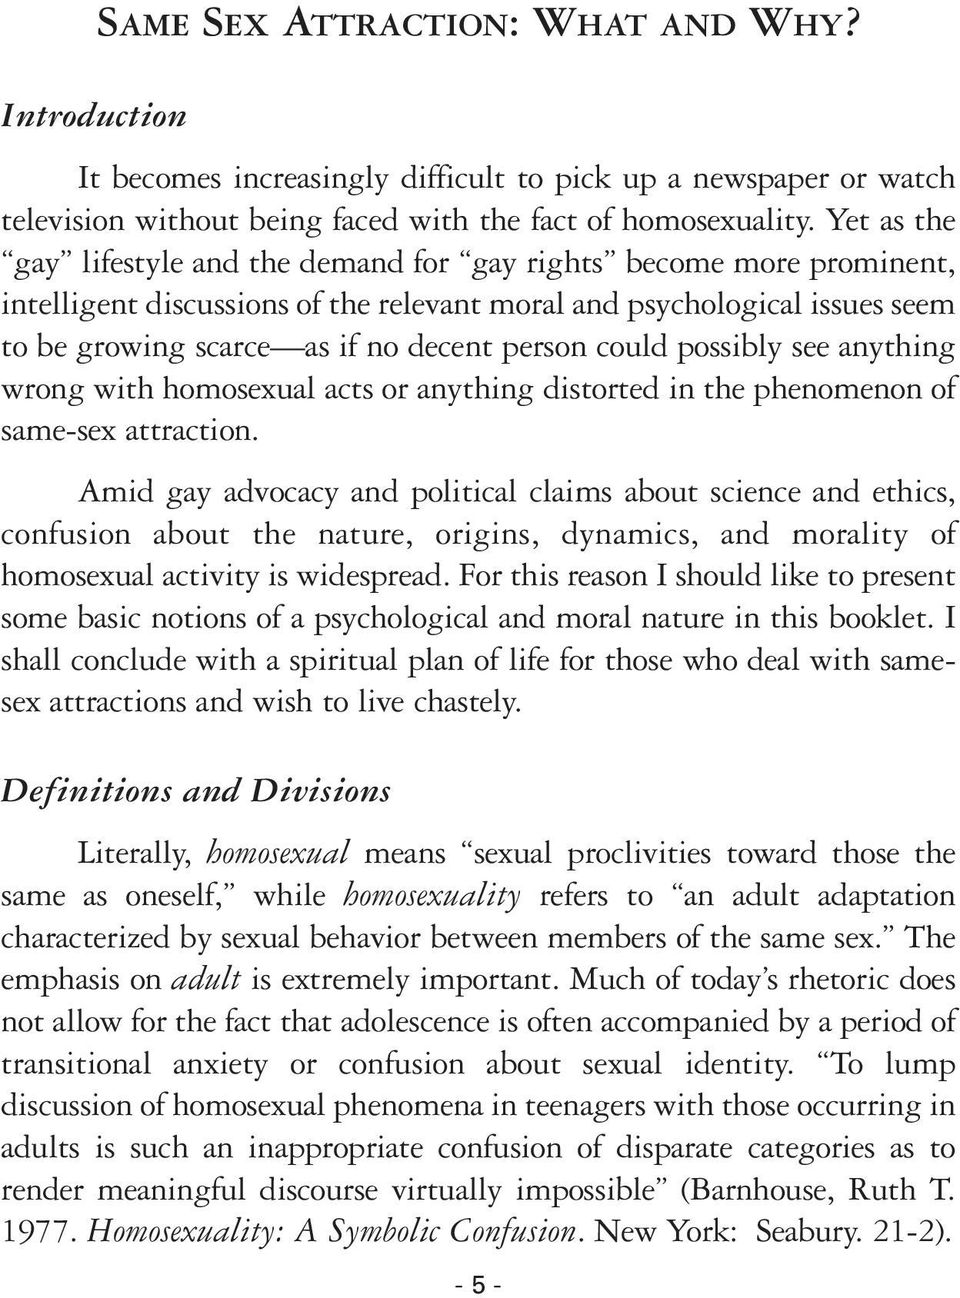 could possibly see anything wrong with homosexual acts or anything distorted in the phenomenon of same-sex attraction.